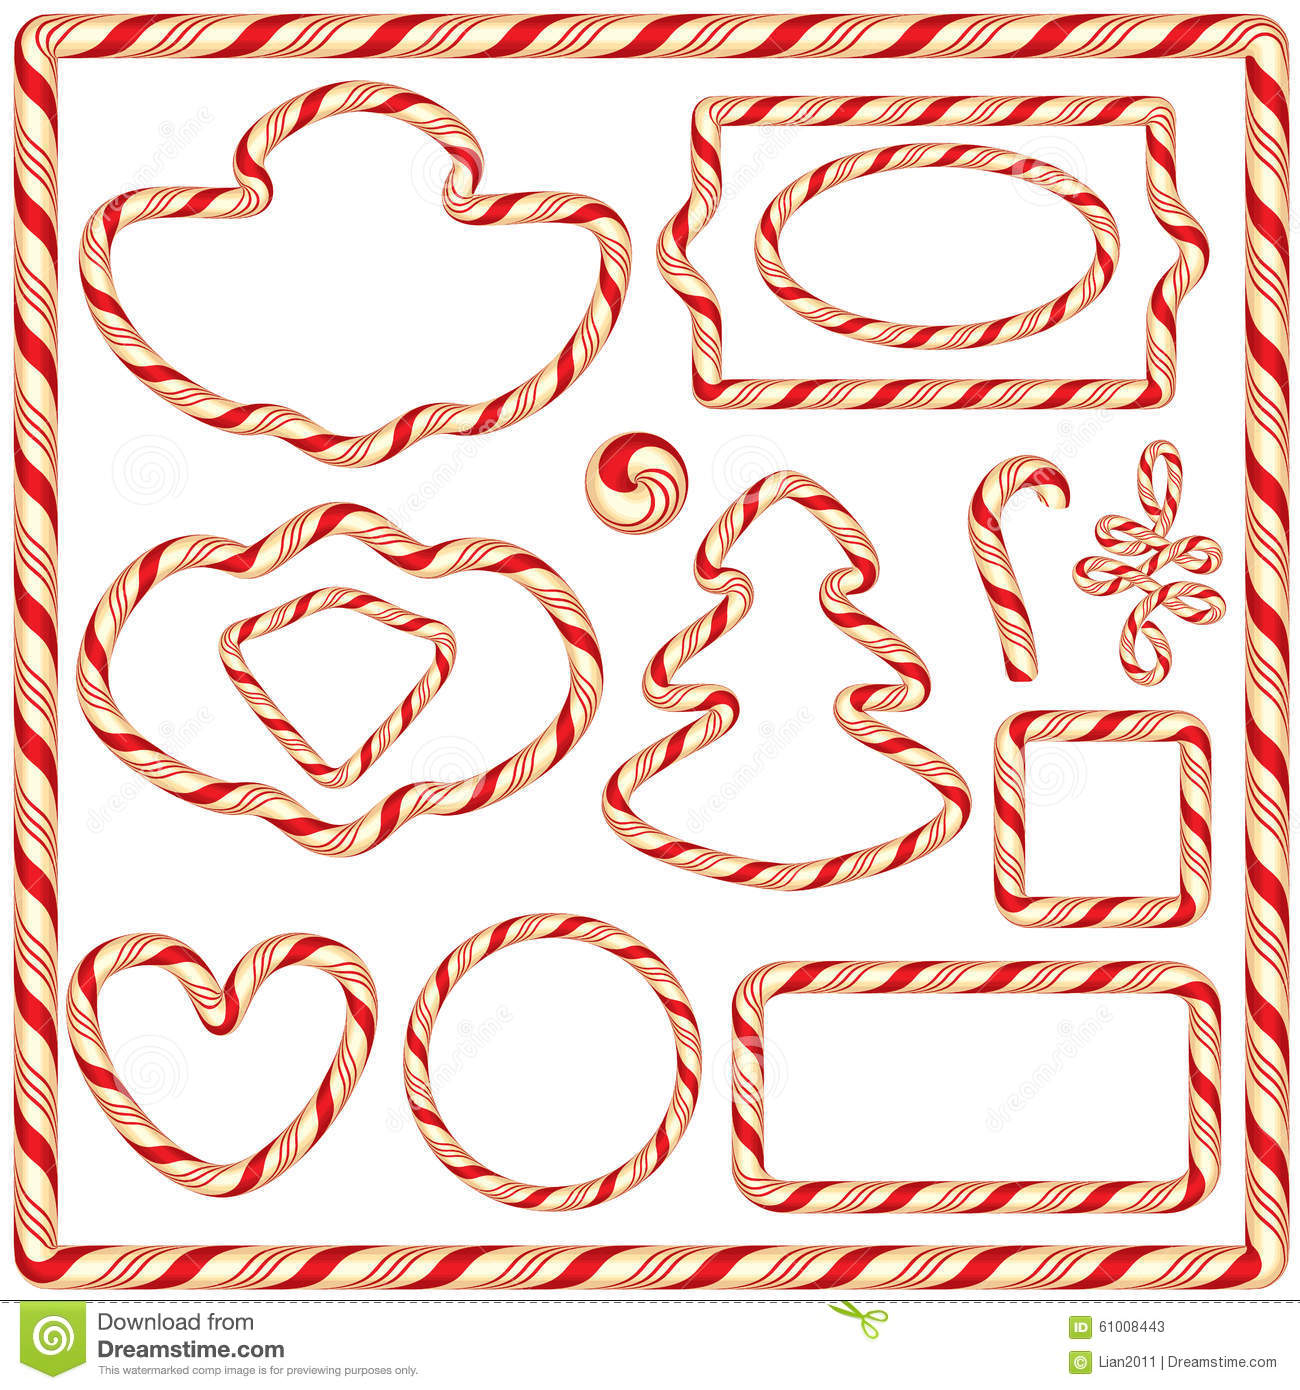 Set of Candy frames and borders, elements for winter holidays design ...